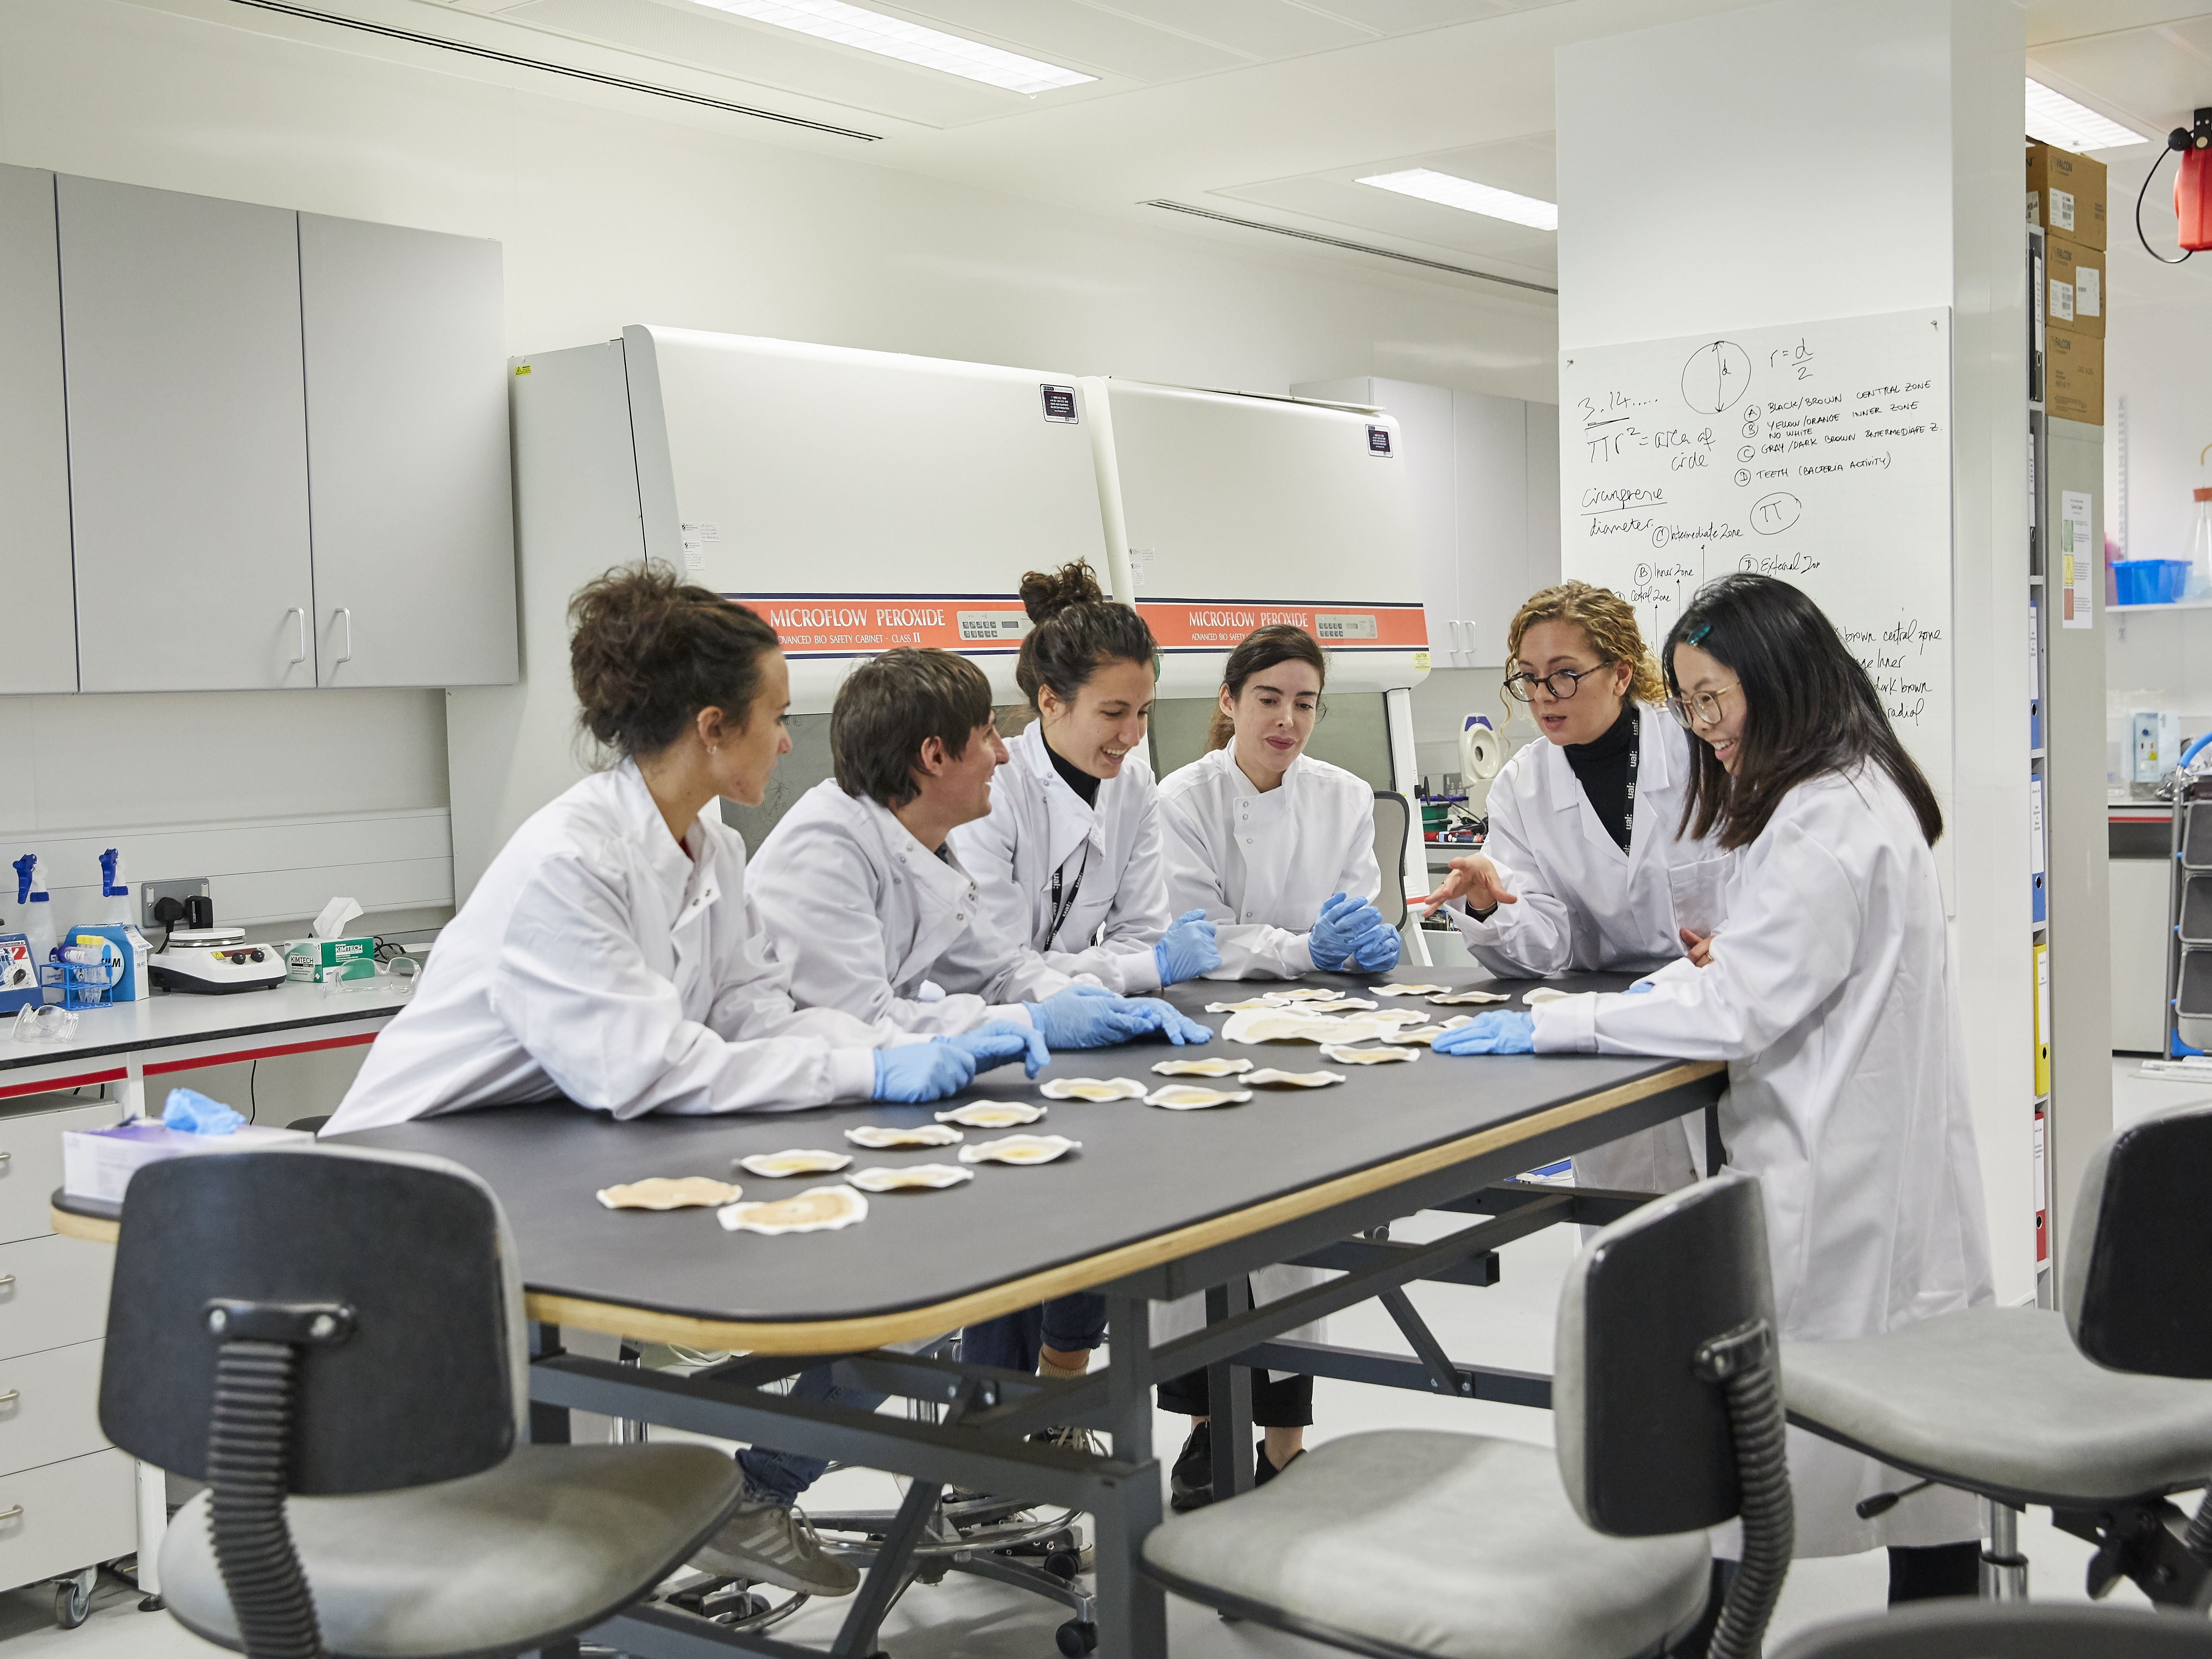 Students working in a lab wearing white coats